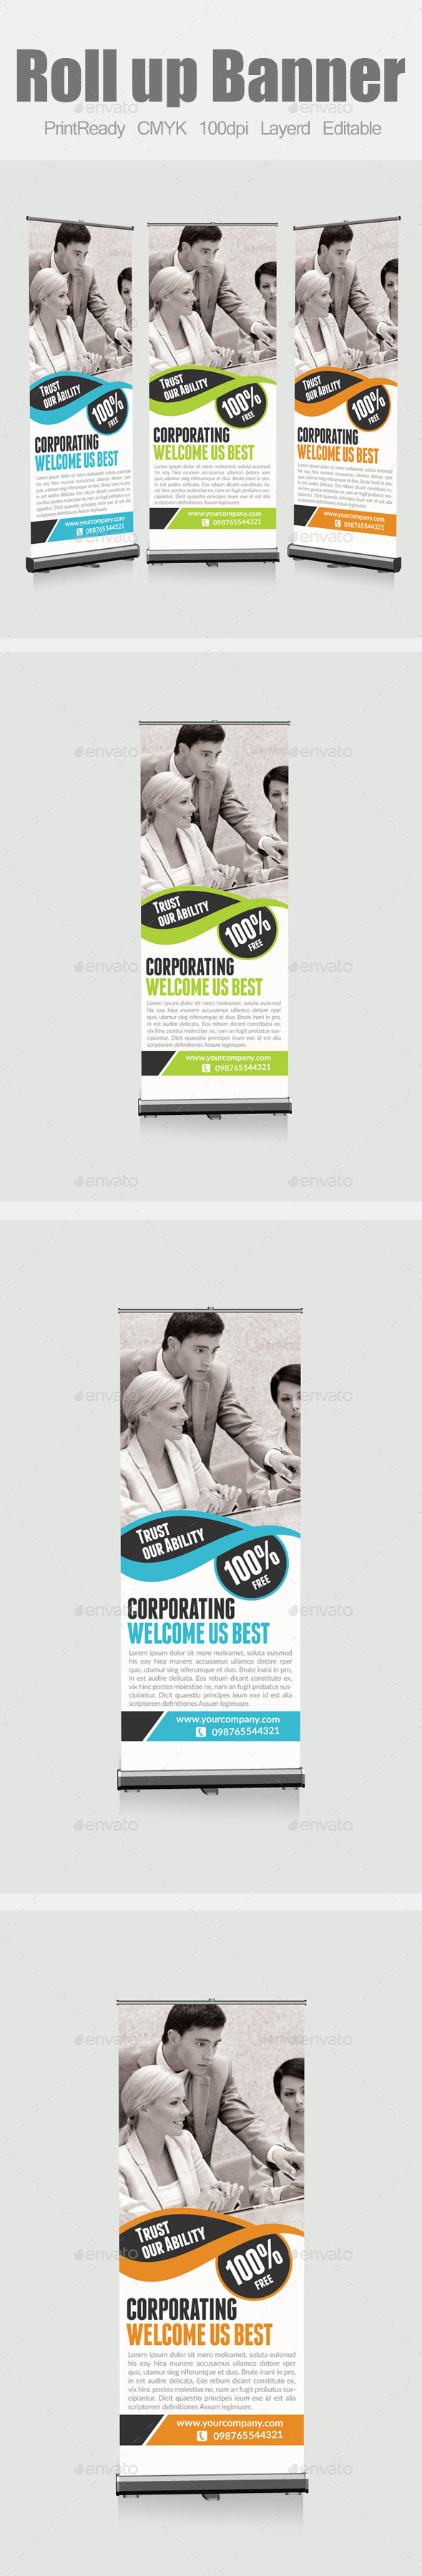 GraphicRiver Roll Up Business Banners 9108763